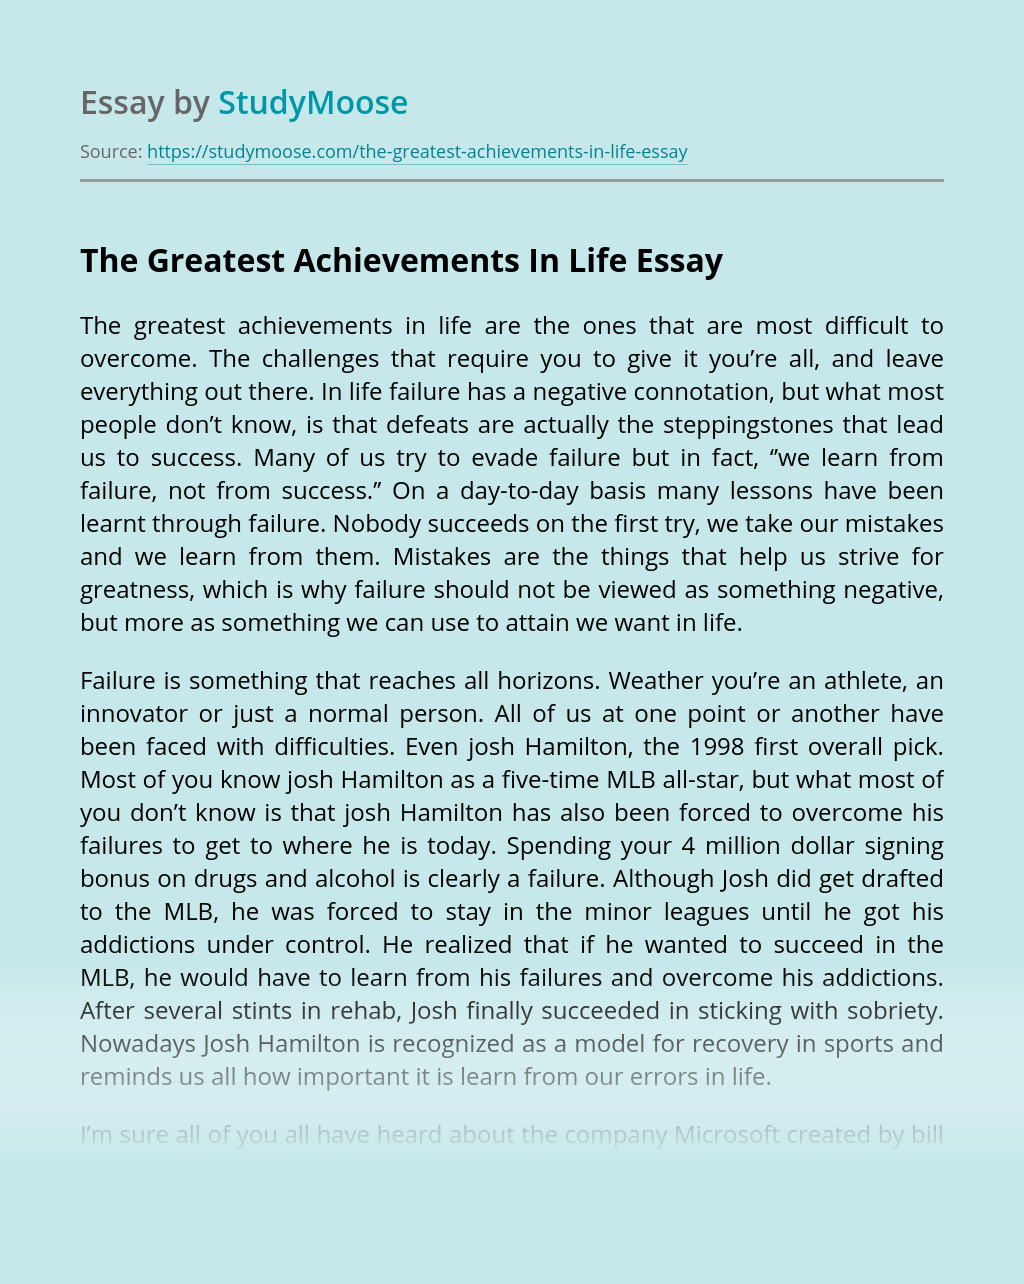 The Greatest Achievements In Life